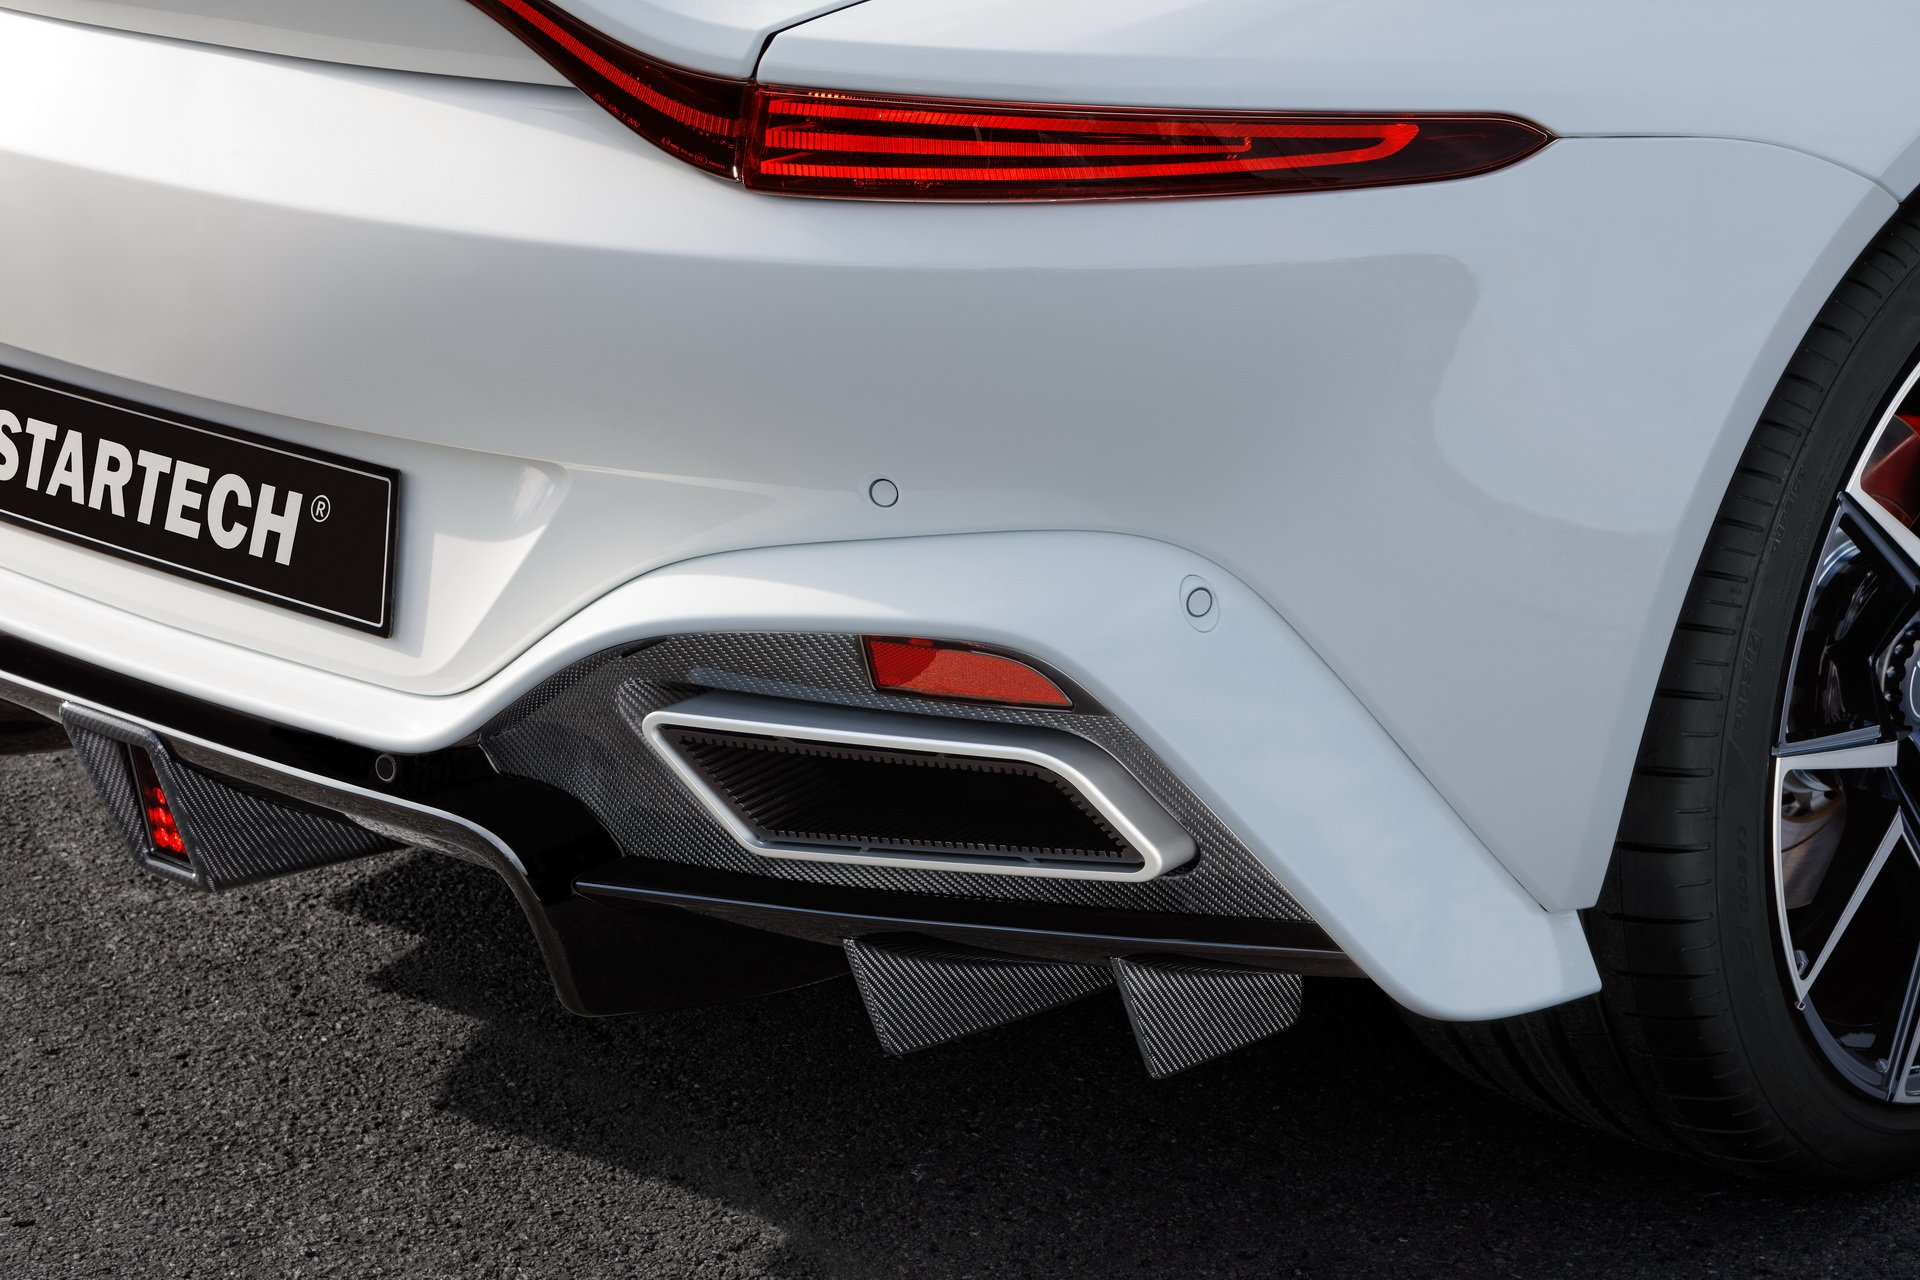 2019 STARTECH Aston Martin Vantage Exhaust Wallpapers (7)